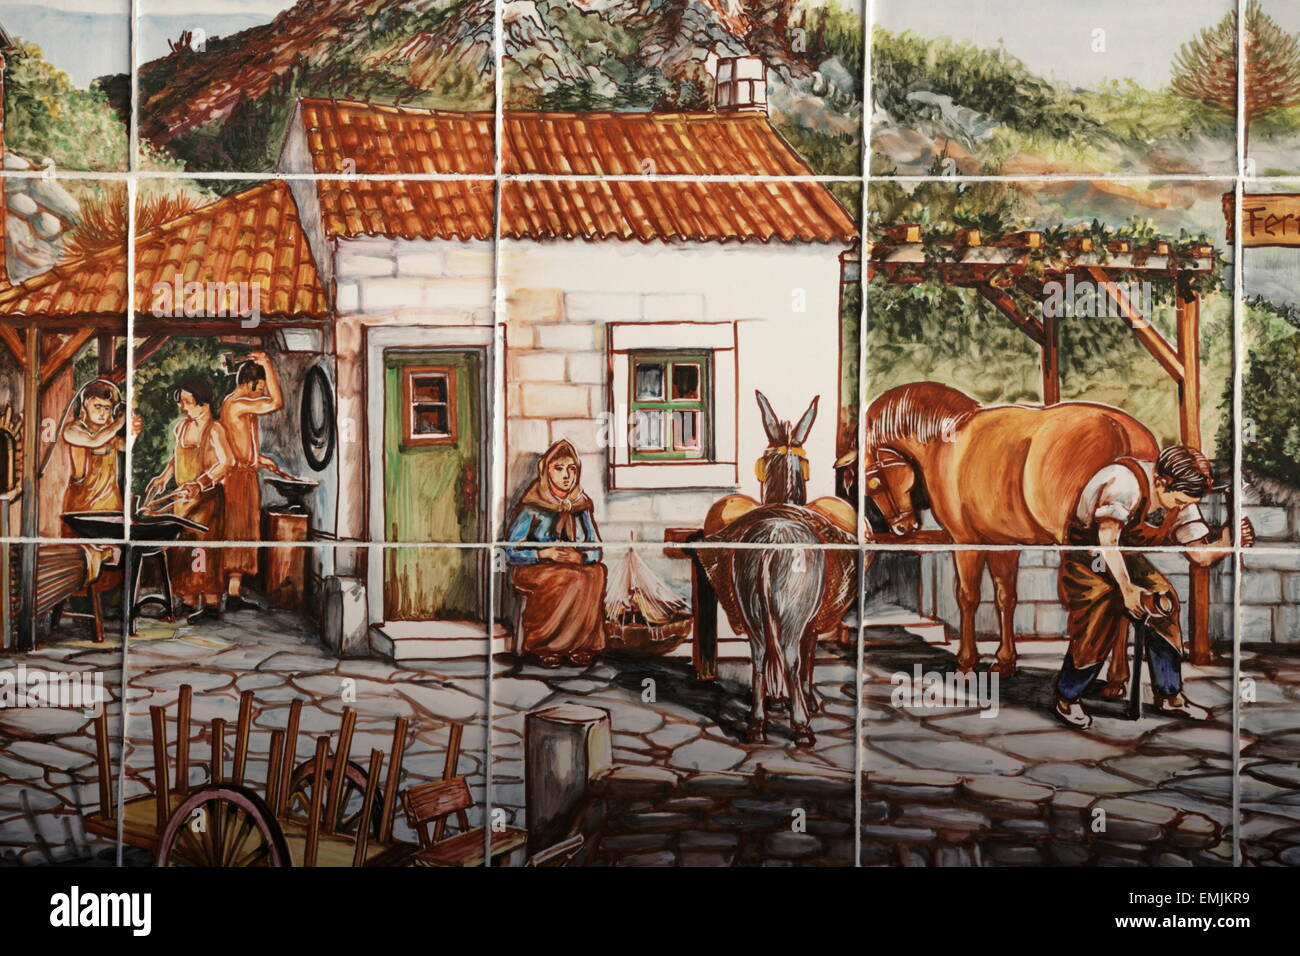 Painted Portuguese tiles, Azulejos, blacksmith of Sintra - Stock Image